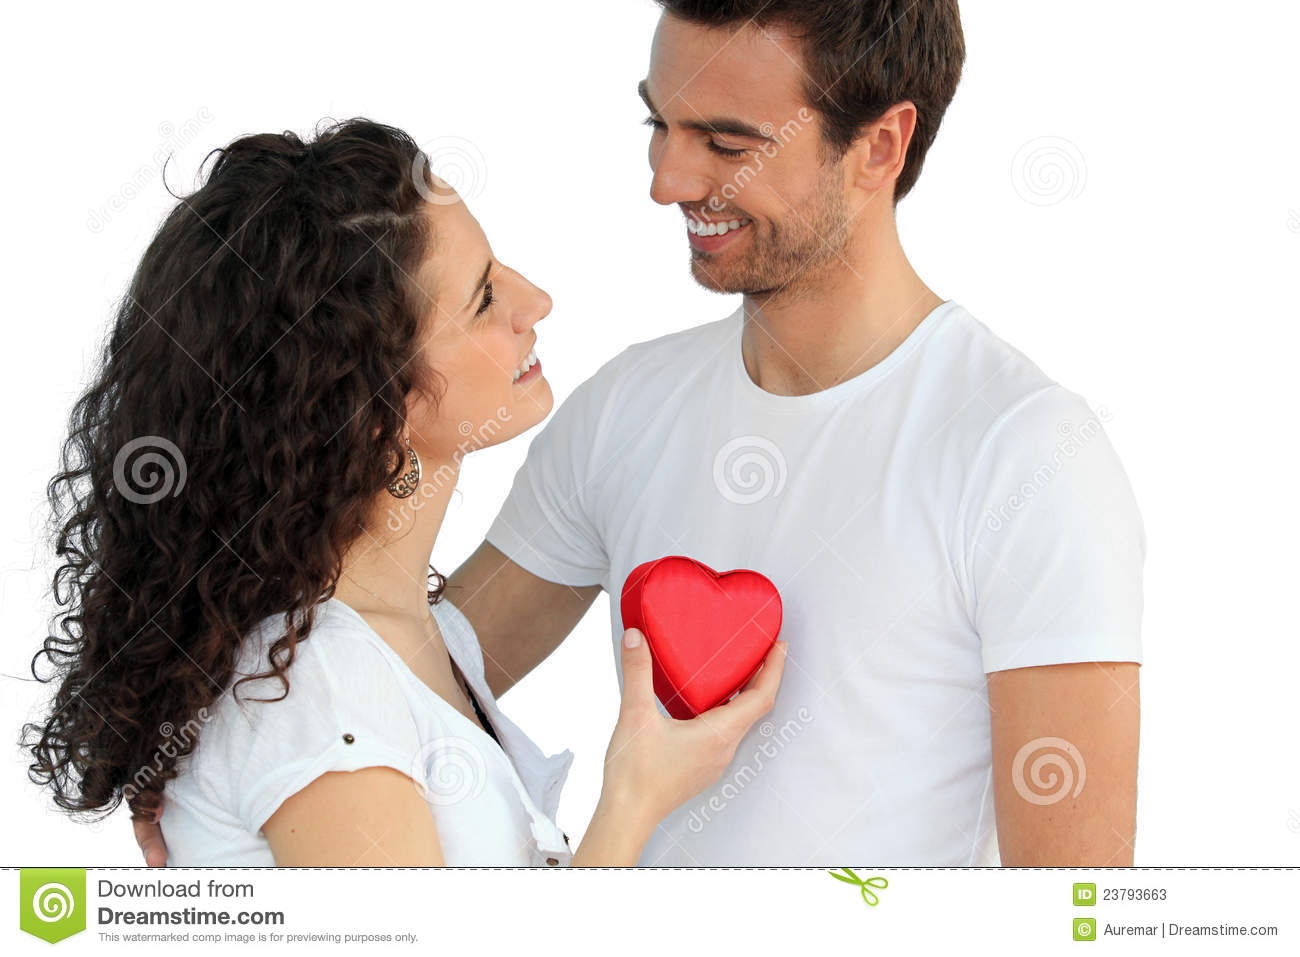 Woman giving man her heart stock image. Image of plain